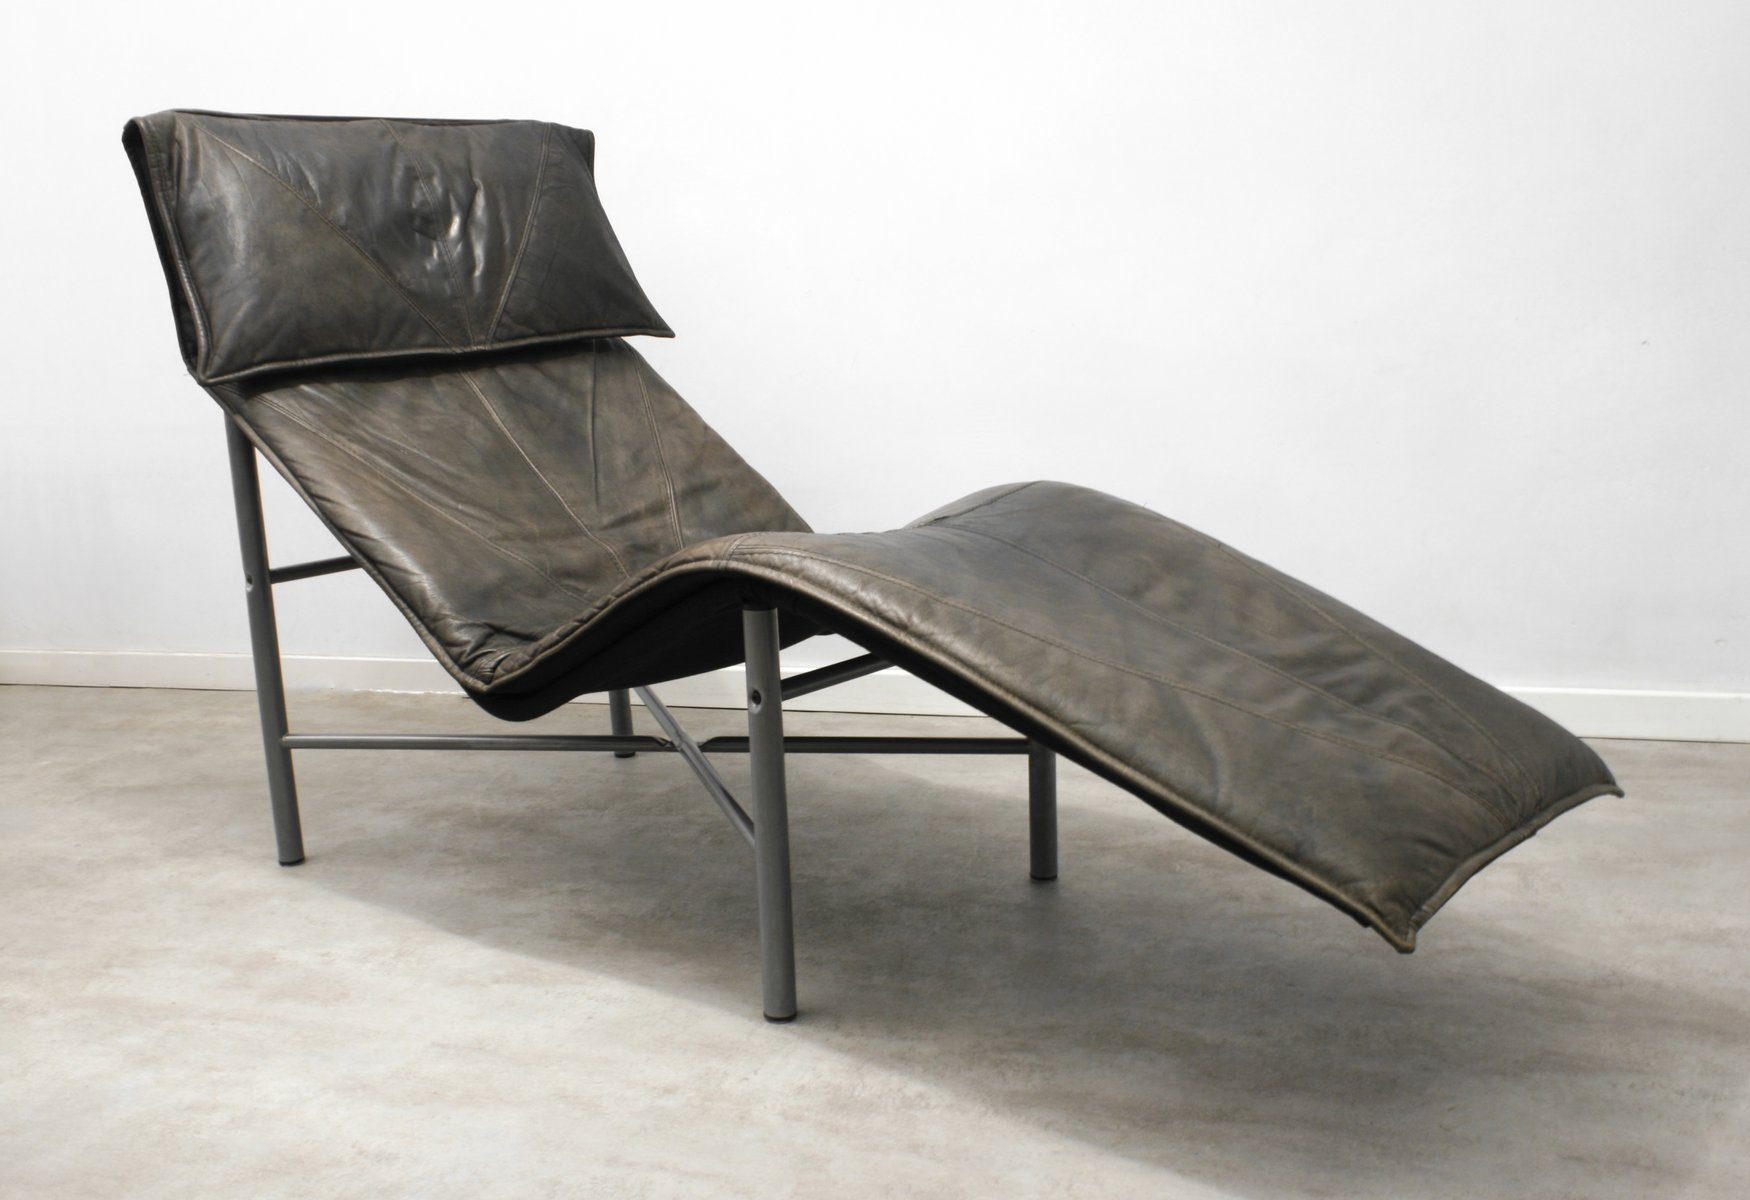 Chaiselongue ikea  Brown Leather Skye Chaise Lounge by Tord Björklund for Ikea, 1980s ...